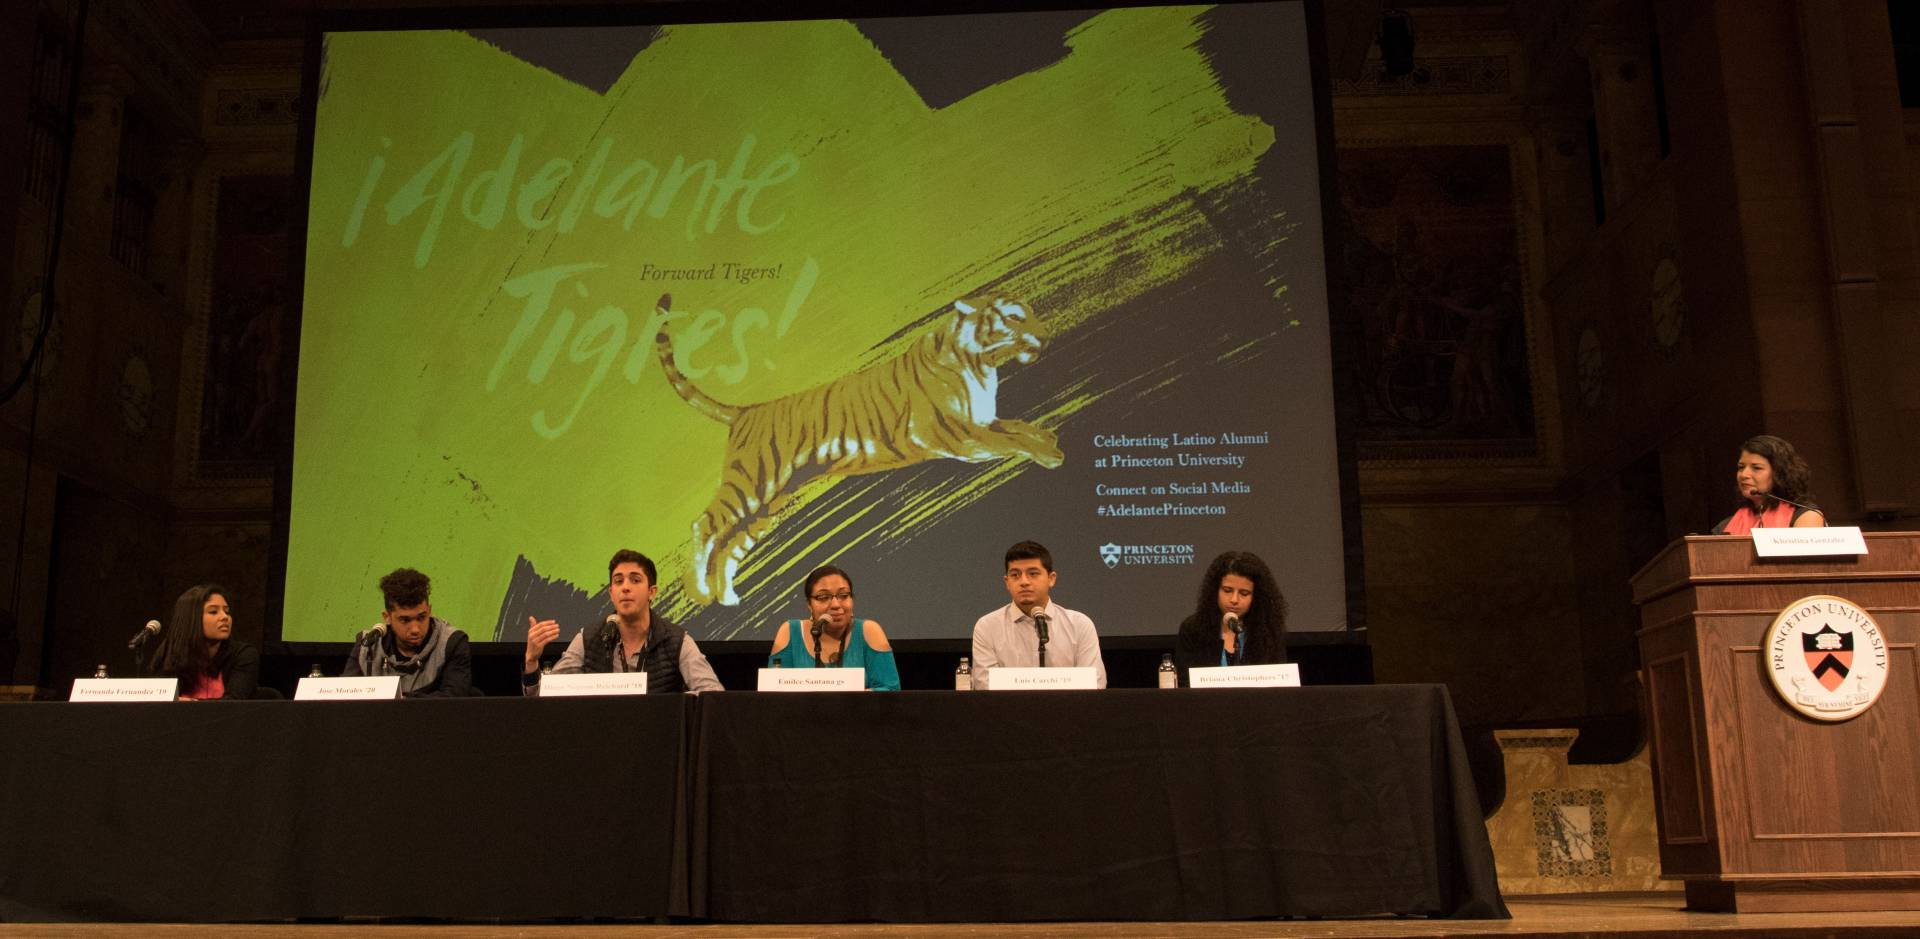 Adelante Tigres Conference: Student panel with Khristina Gonzalez